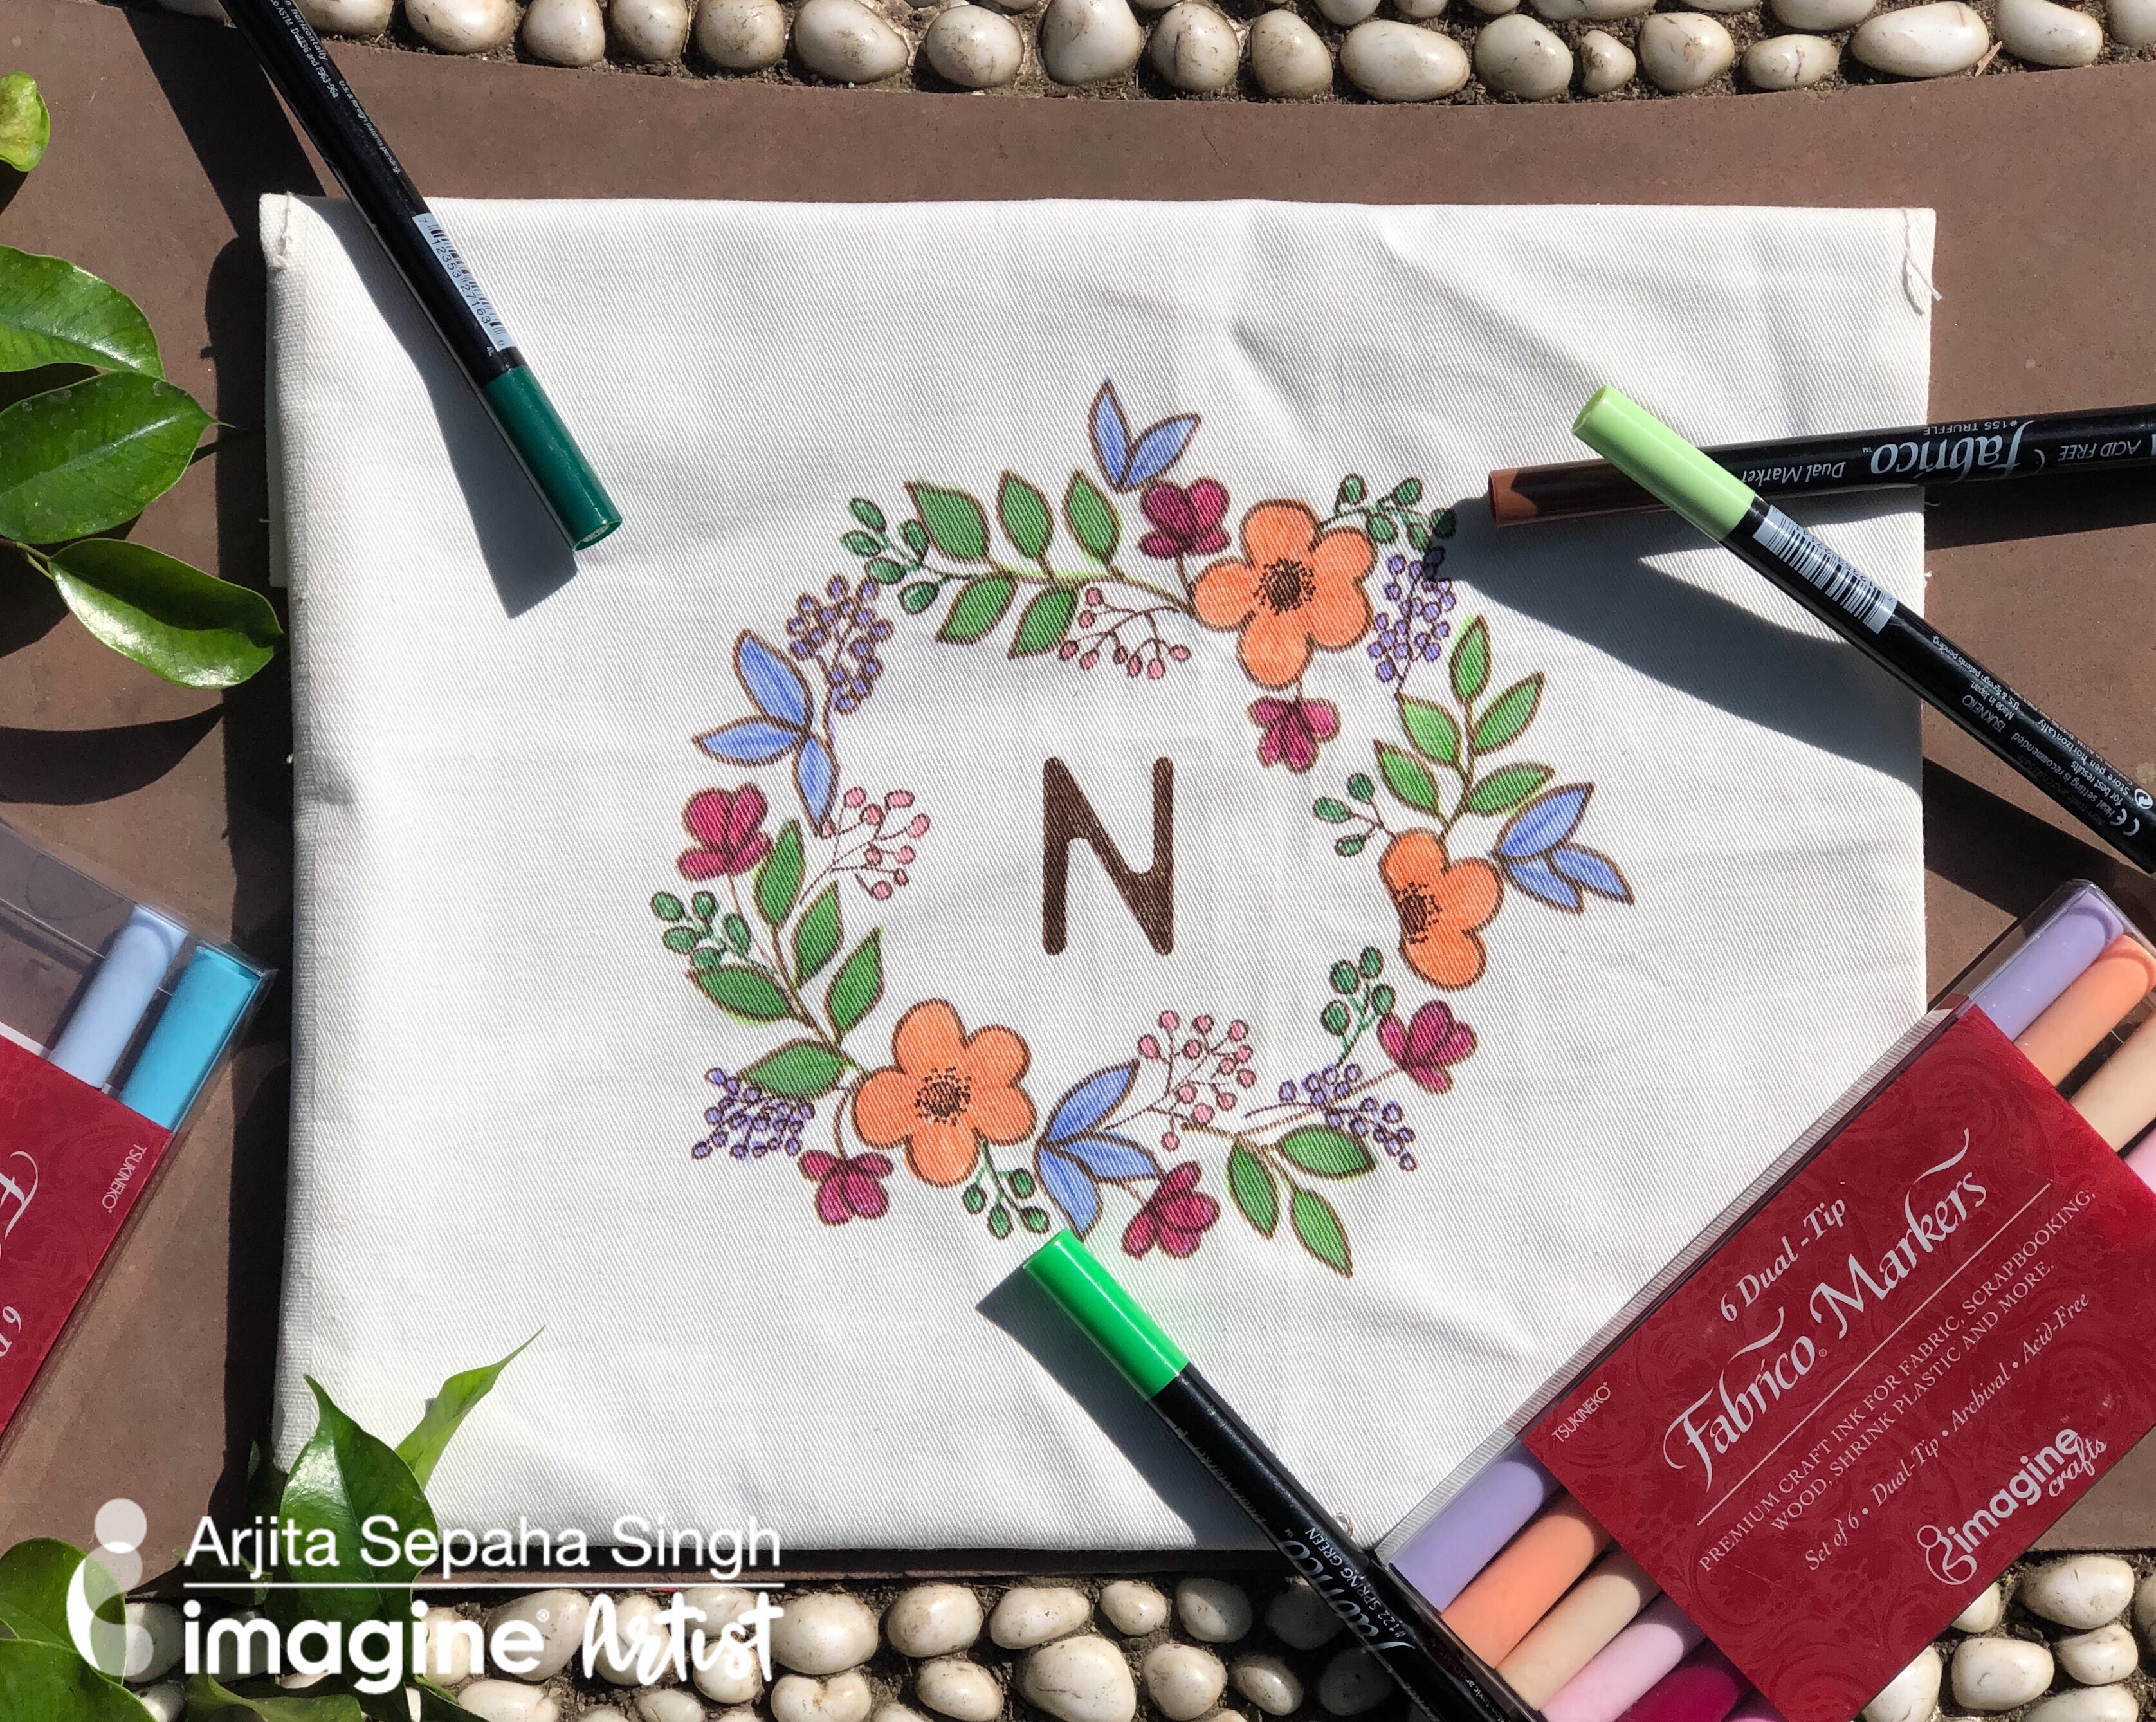 Learn how to Draw on Fabric with Fabrico Markers